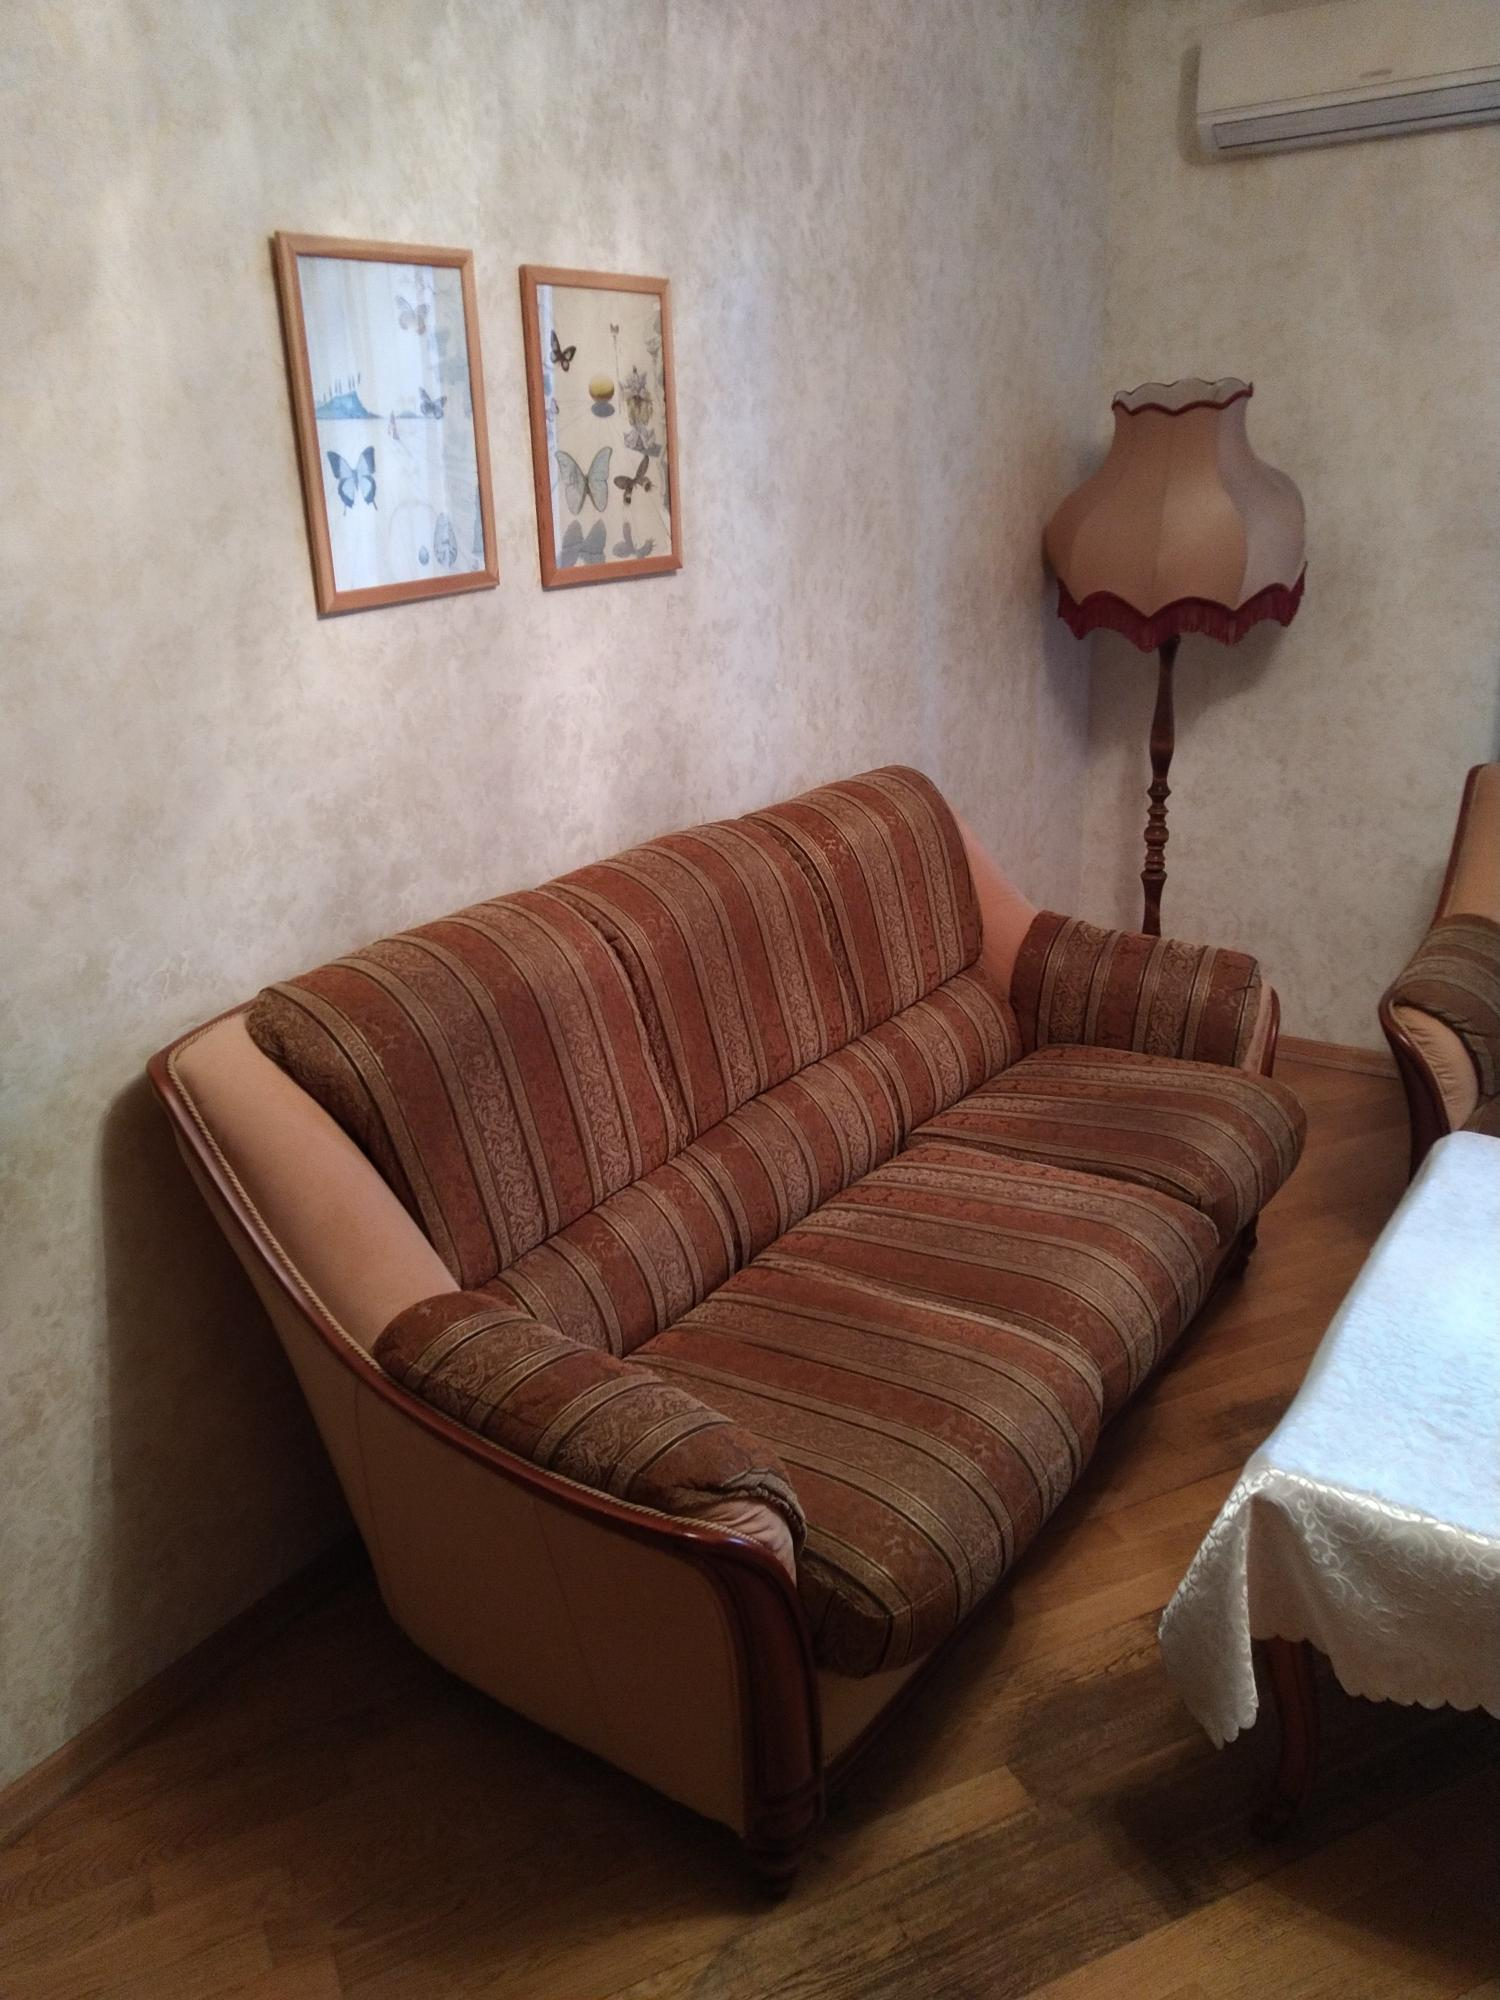 Apartment, 2 rooms, 54 m2 in Moscow 89857652487 buy 3